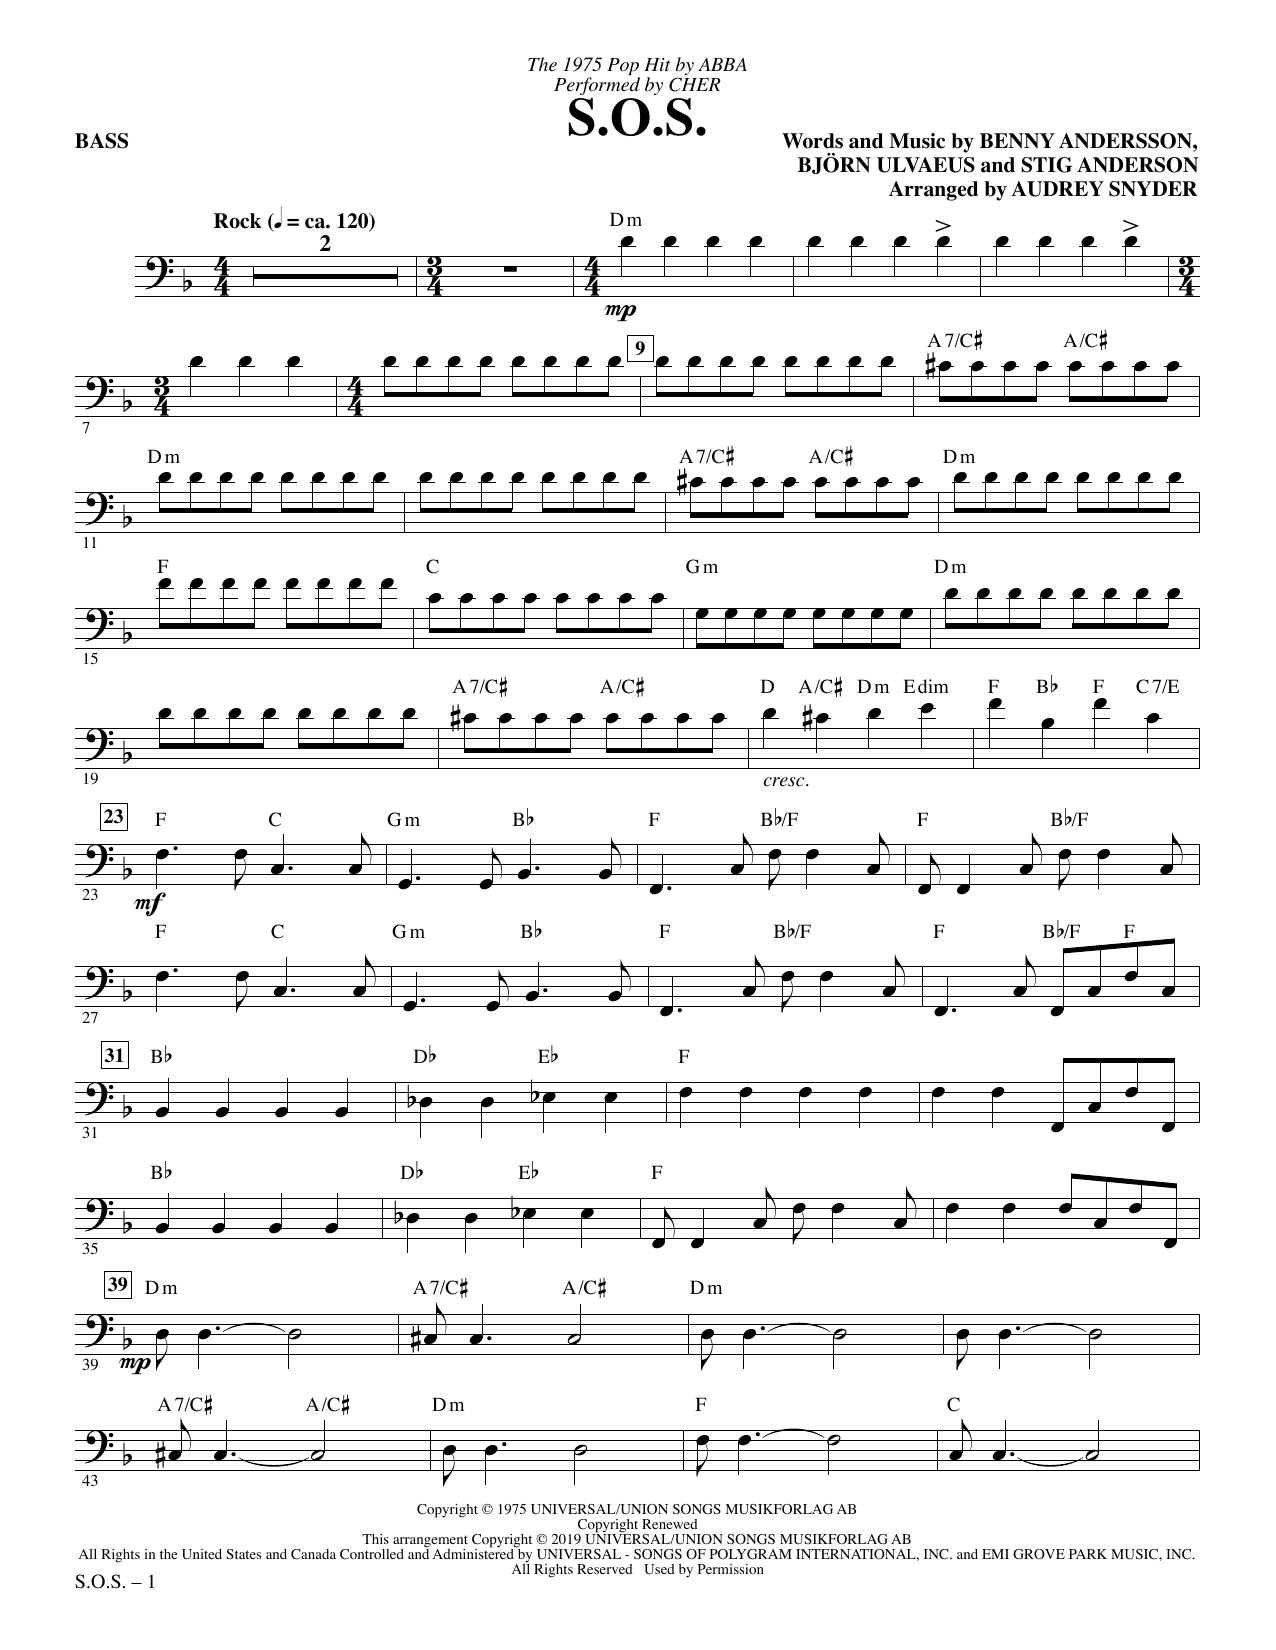 Cher S.O.S. (arr. Audrey Snyder) - Bass sheet music notes and chords. Download Printable PDF.